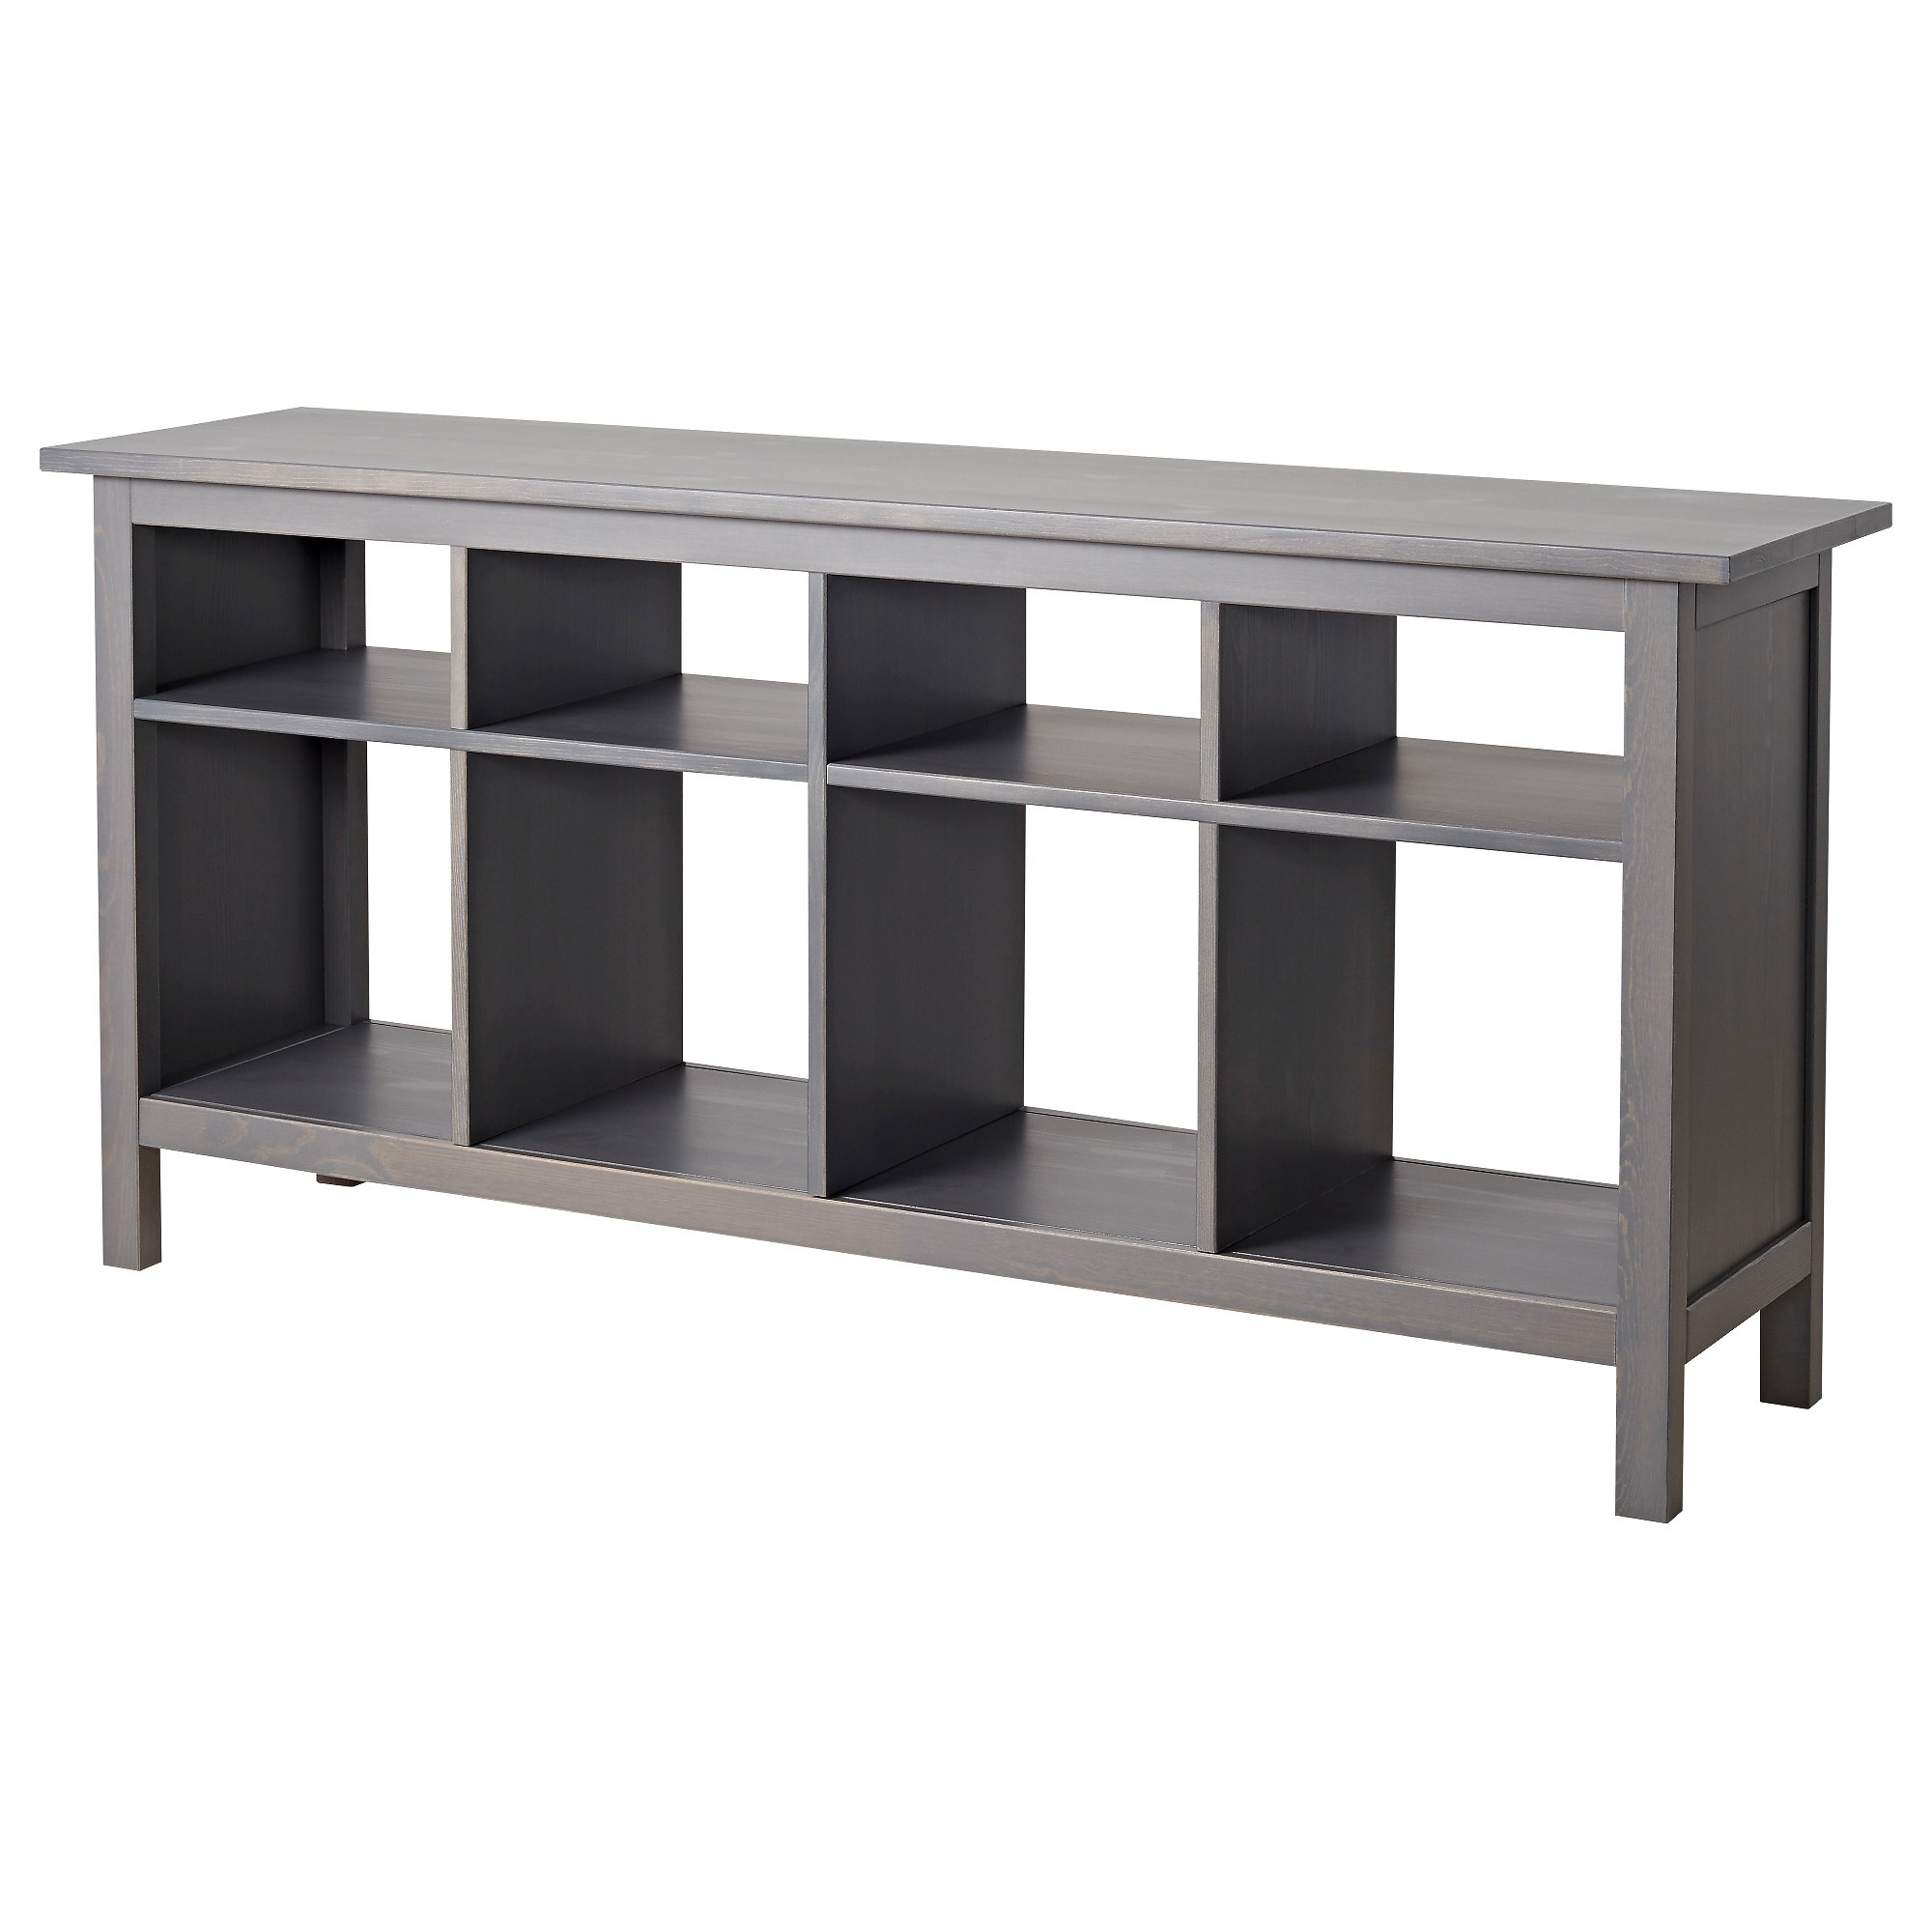 Gray Sofa Table Archives - Modern Sofa Design Ideas | Modern Sofa with regard to Archive Grey Console Tables (Image 23 of 30)